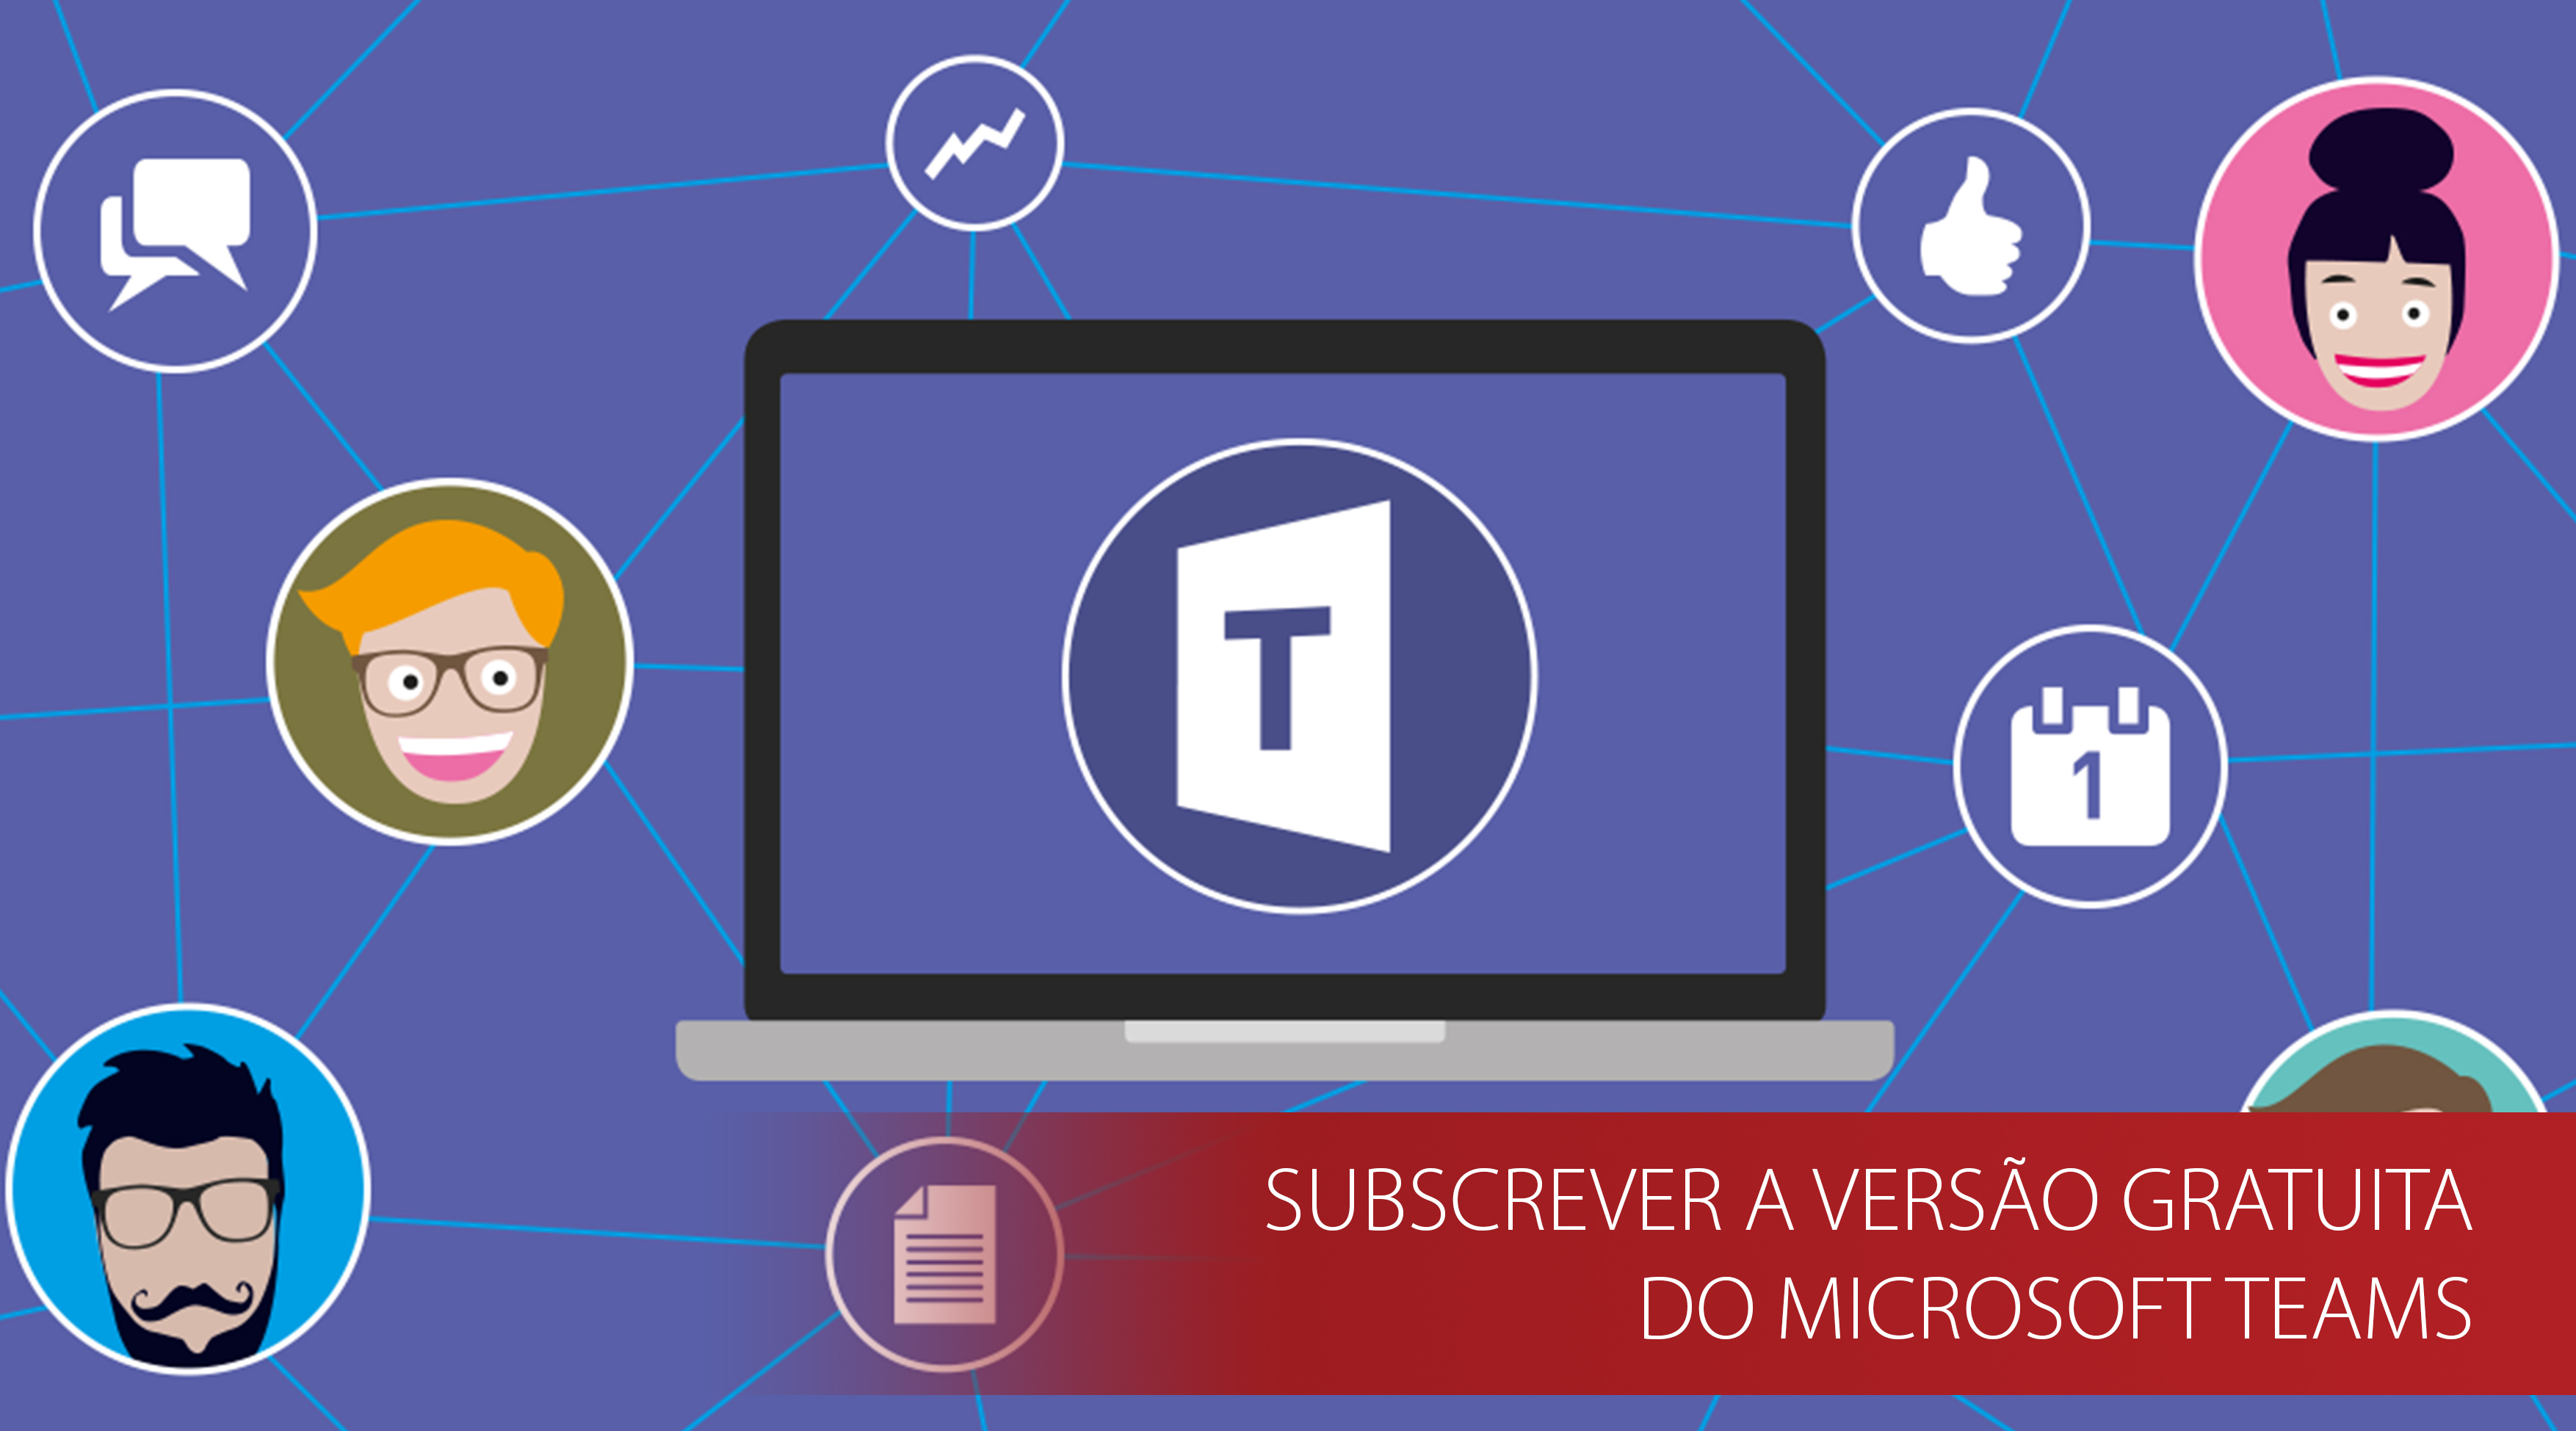 How TO: Subscrever a versão gratuita do Microsoft Teams